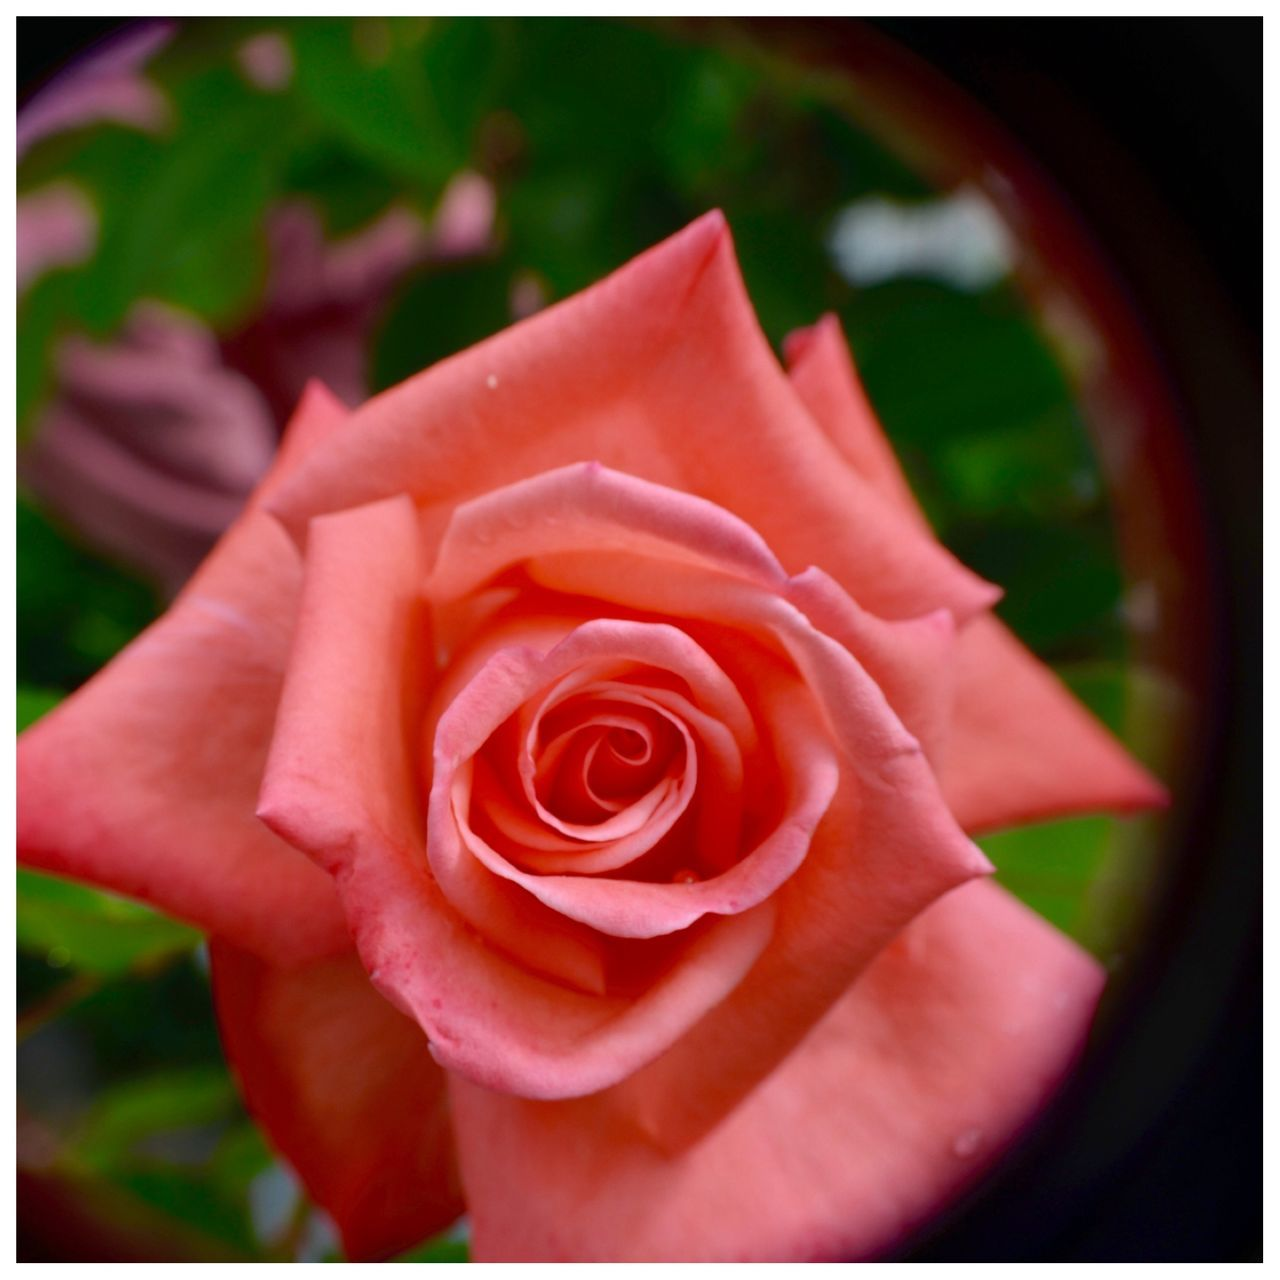 Close-Up Of Red Rose Flower